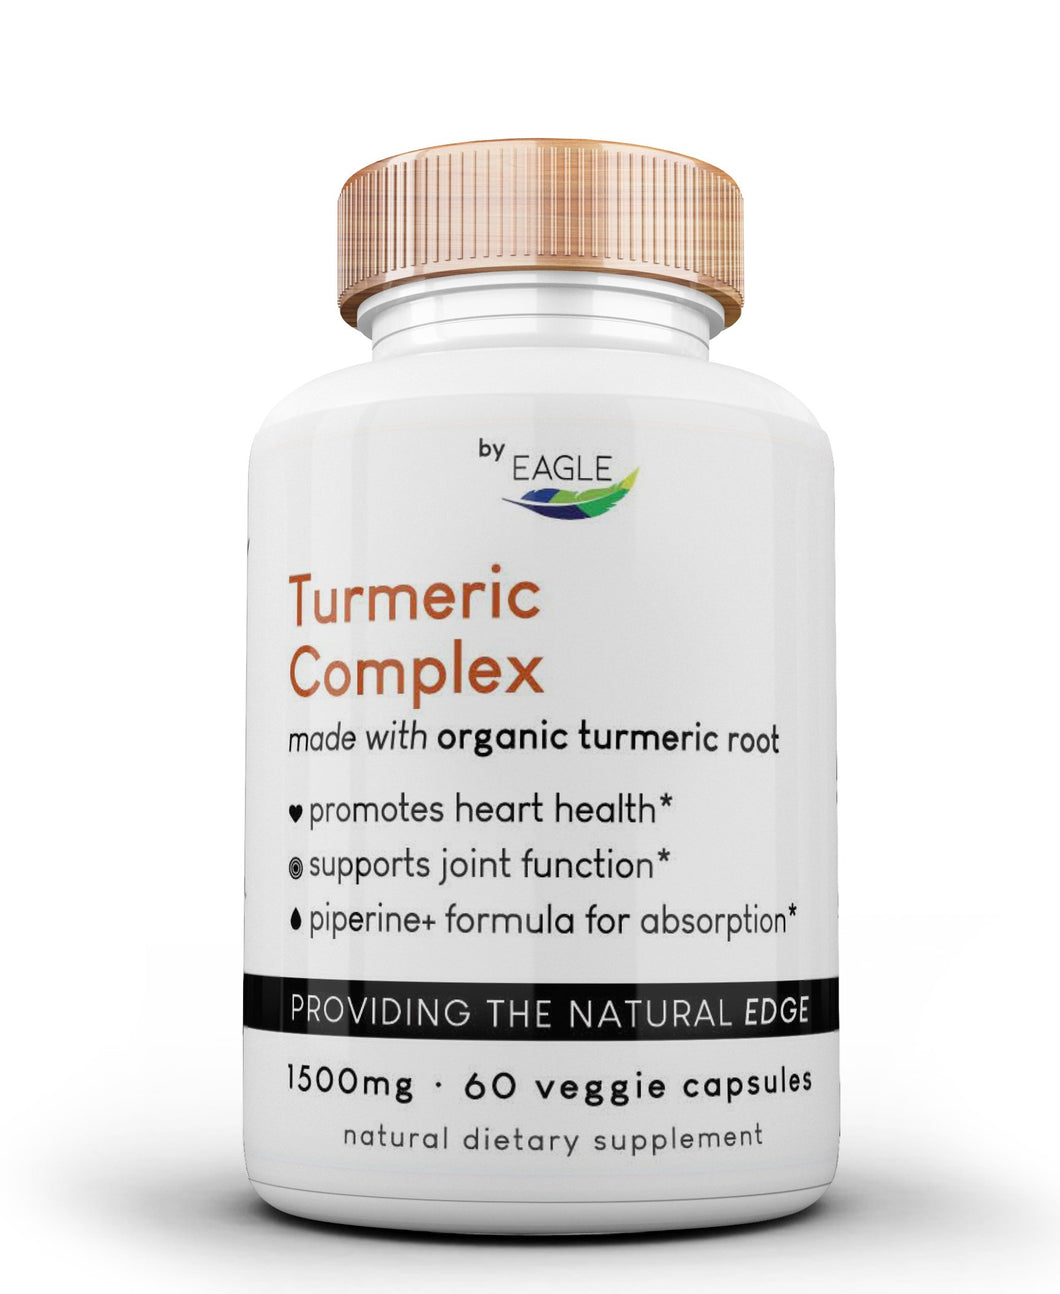 Turmeric Complex - Made with Organic Turmeric Root